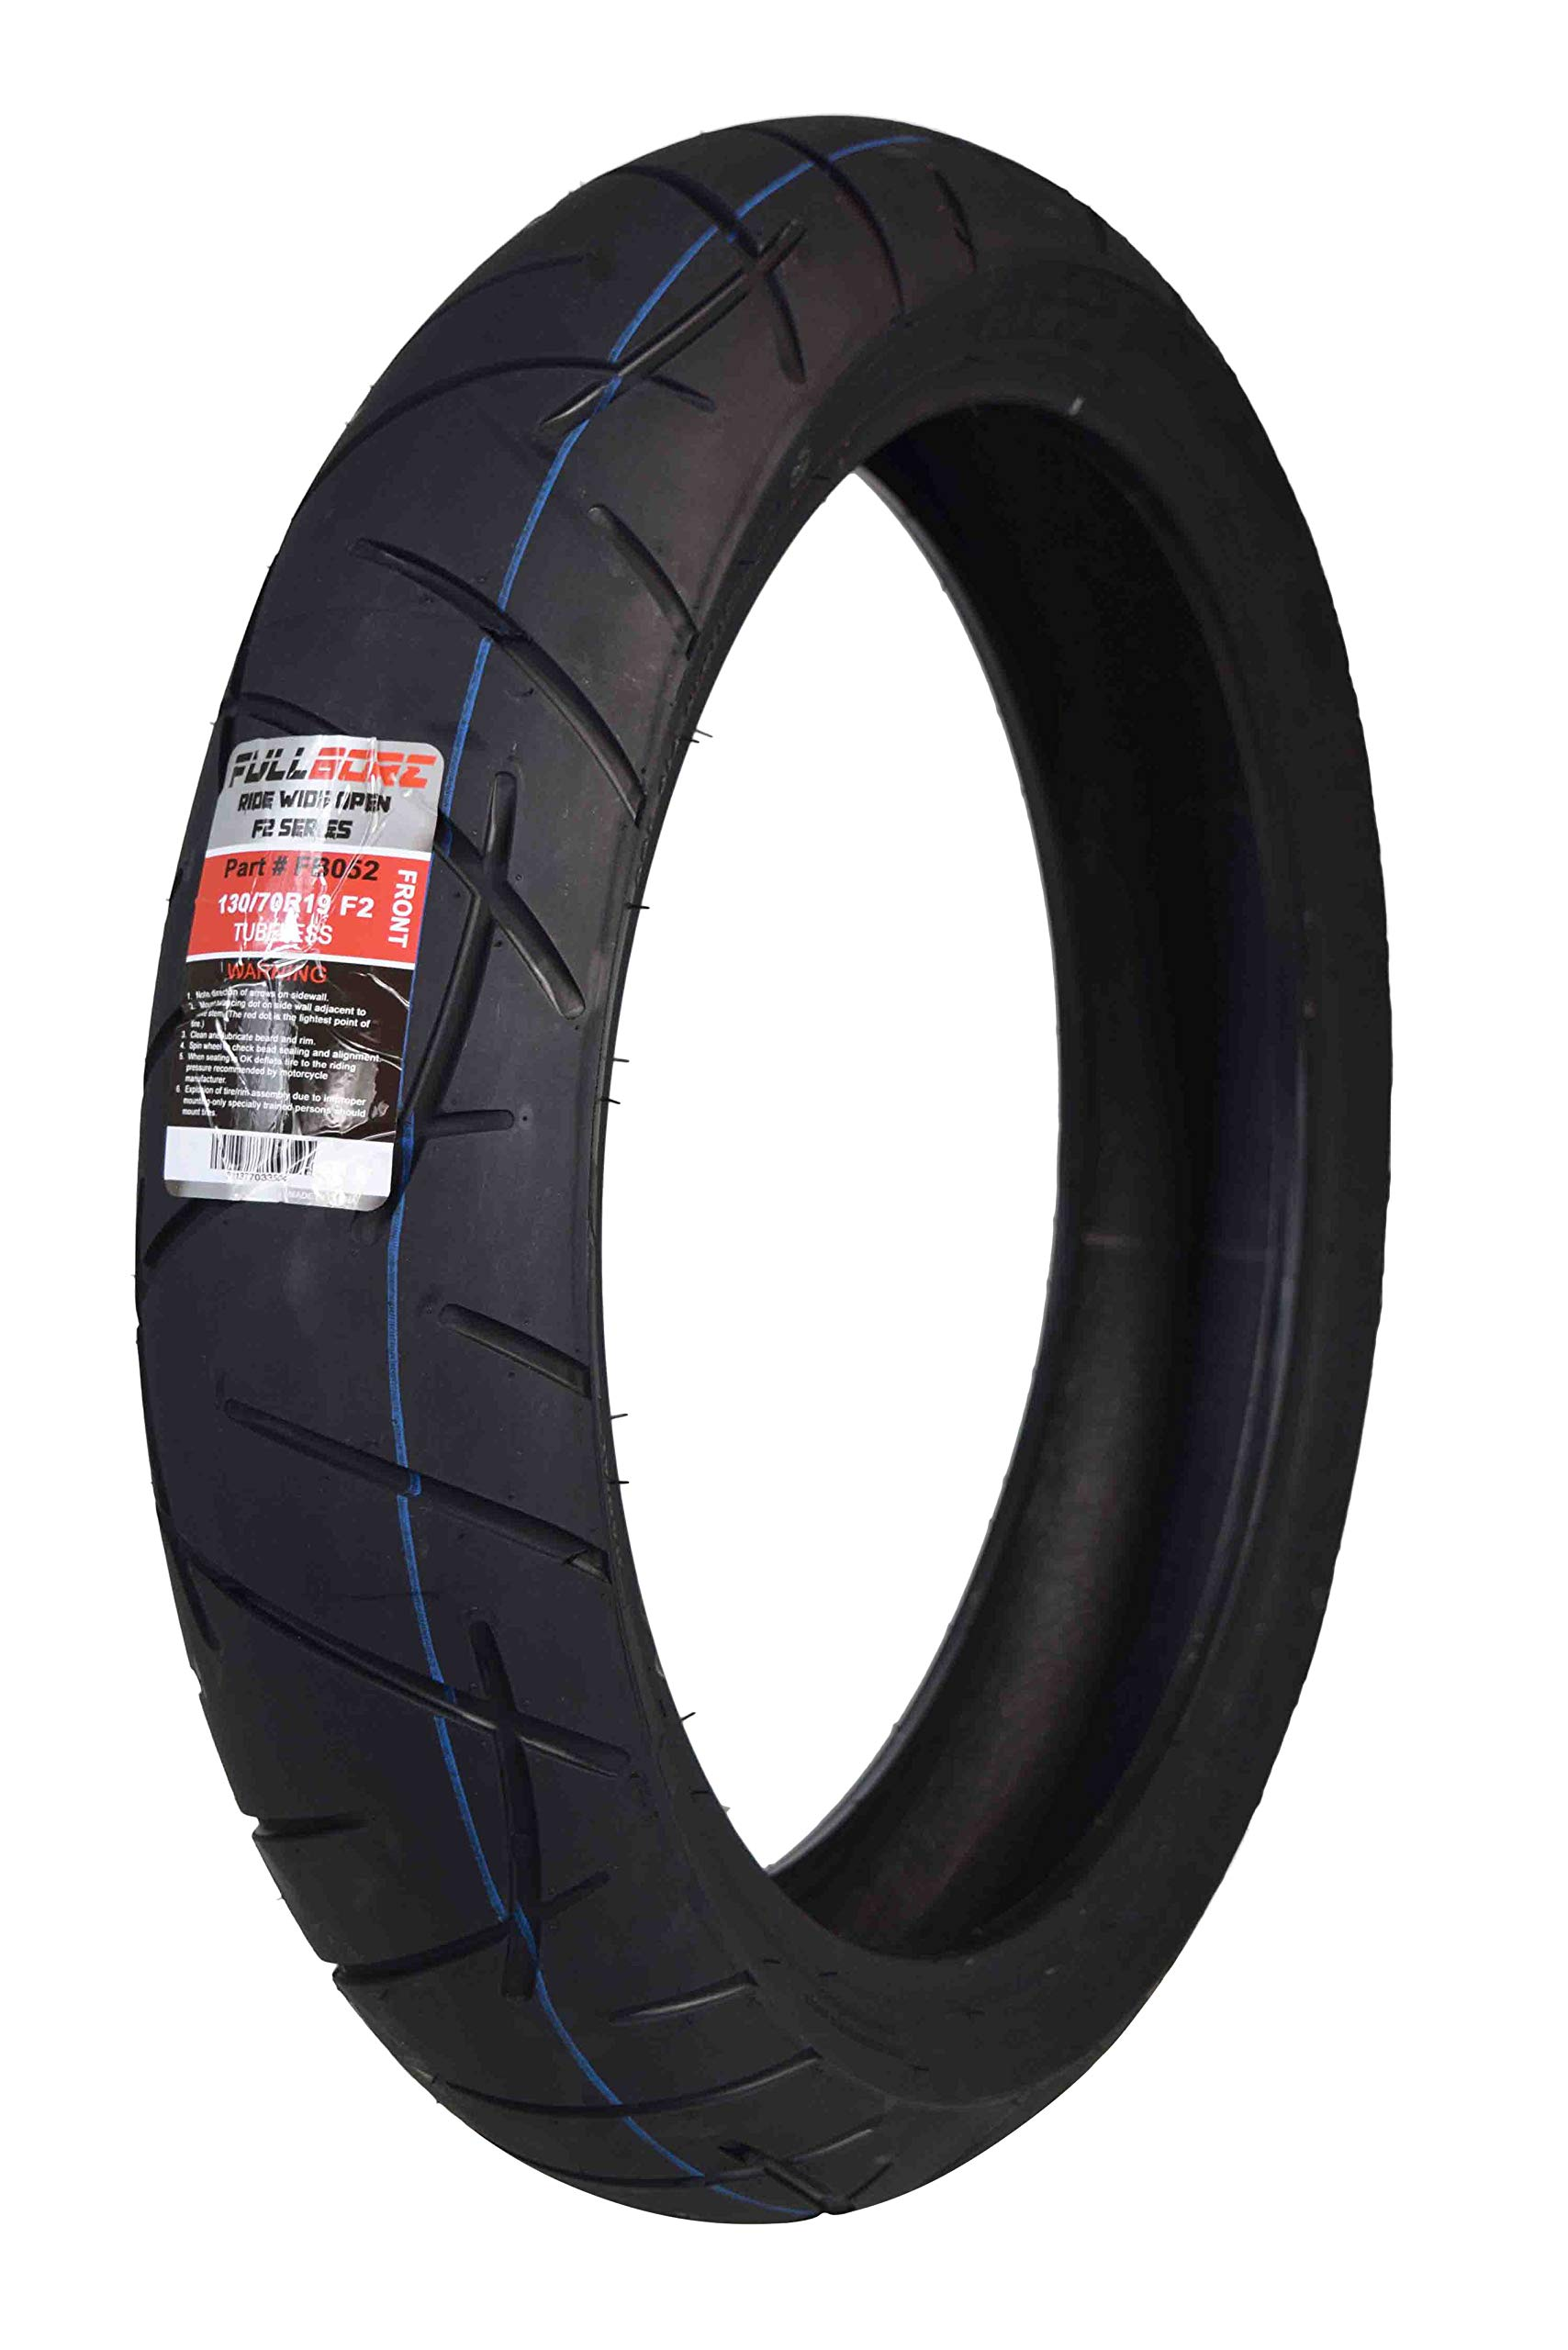 Full Bore F2 Front Single Tire (130/70R19 Front) Upgrade your 120/70R19 with a fatter 130/70R19